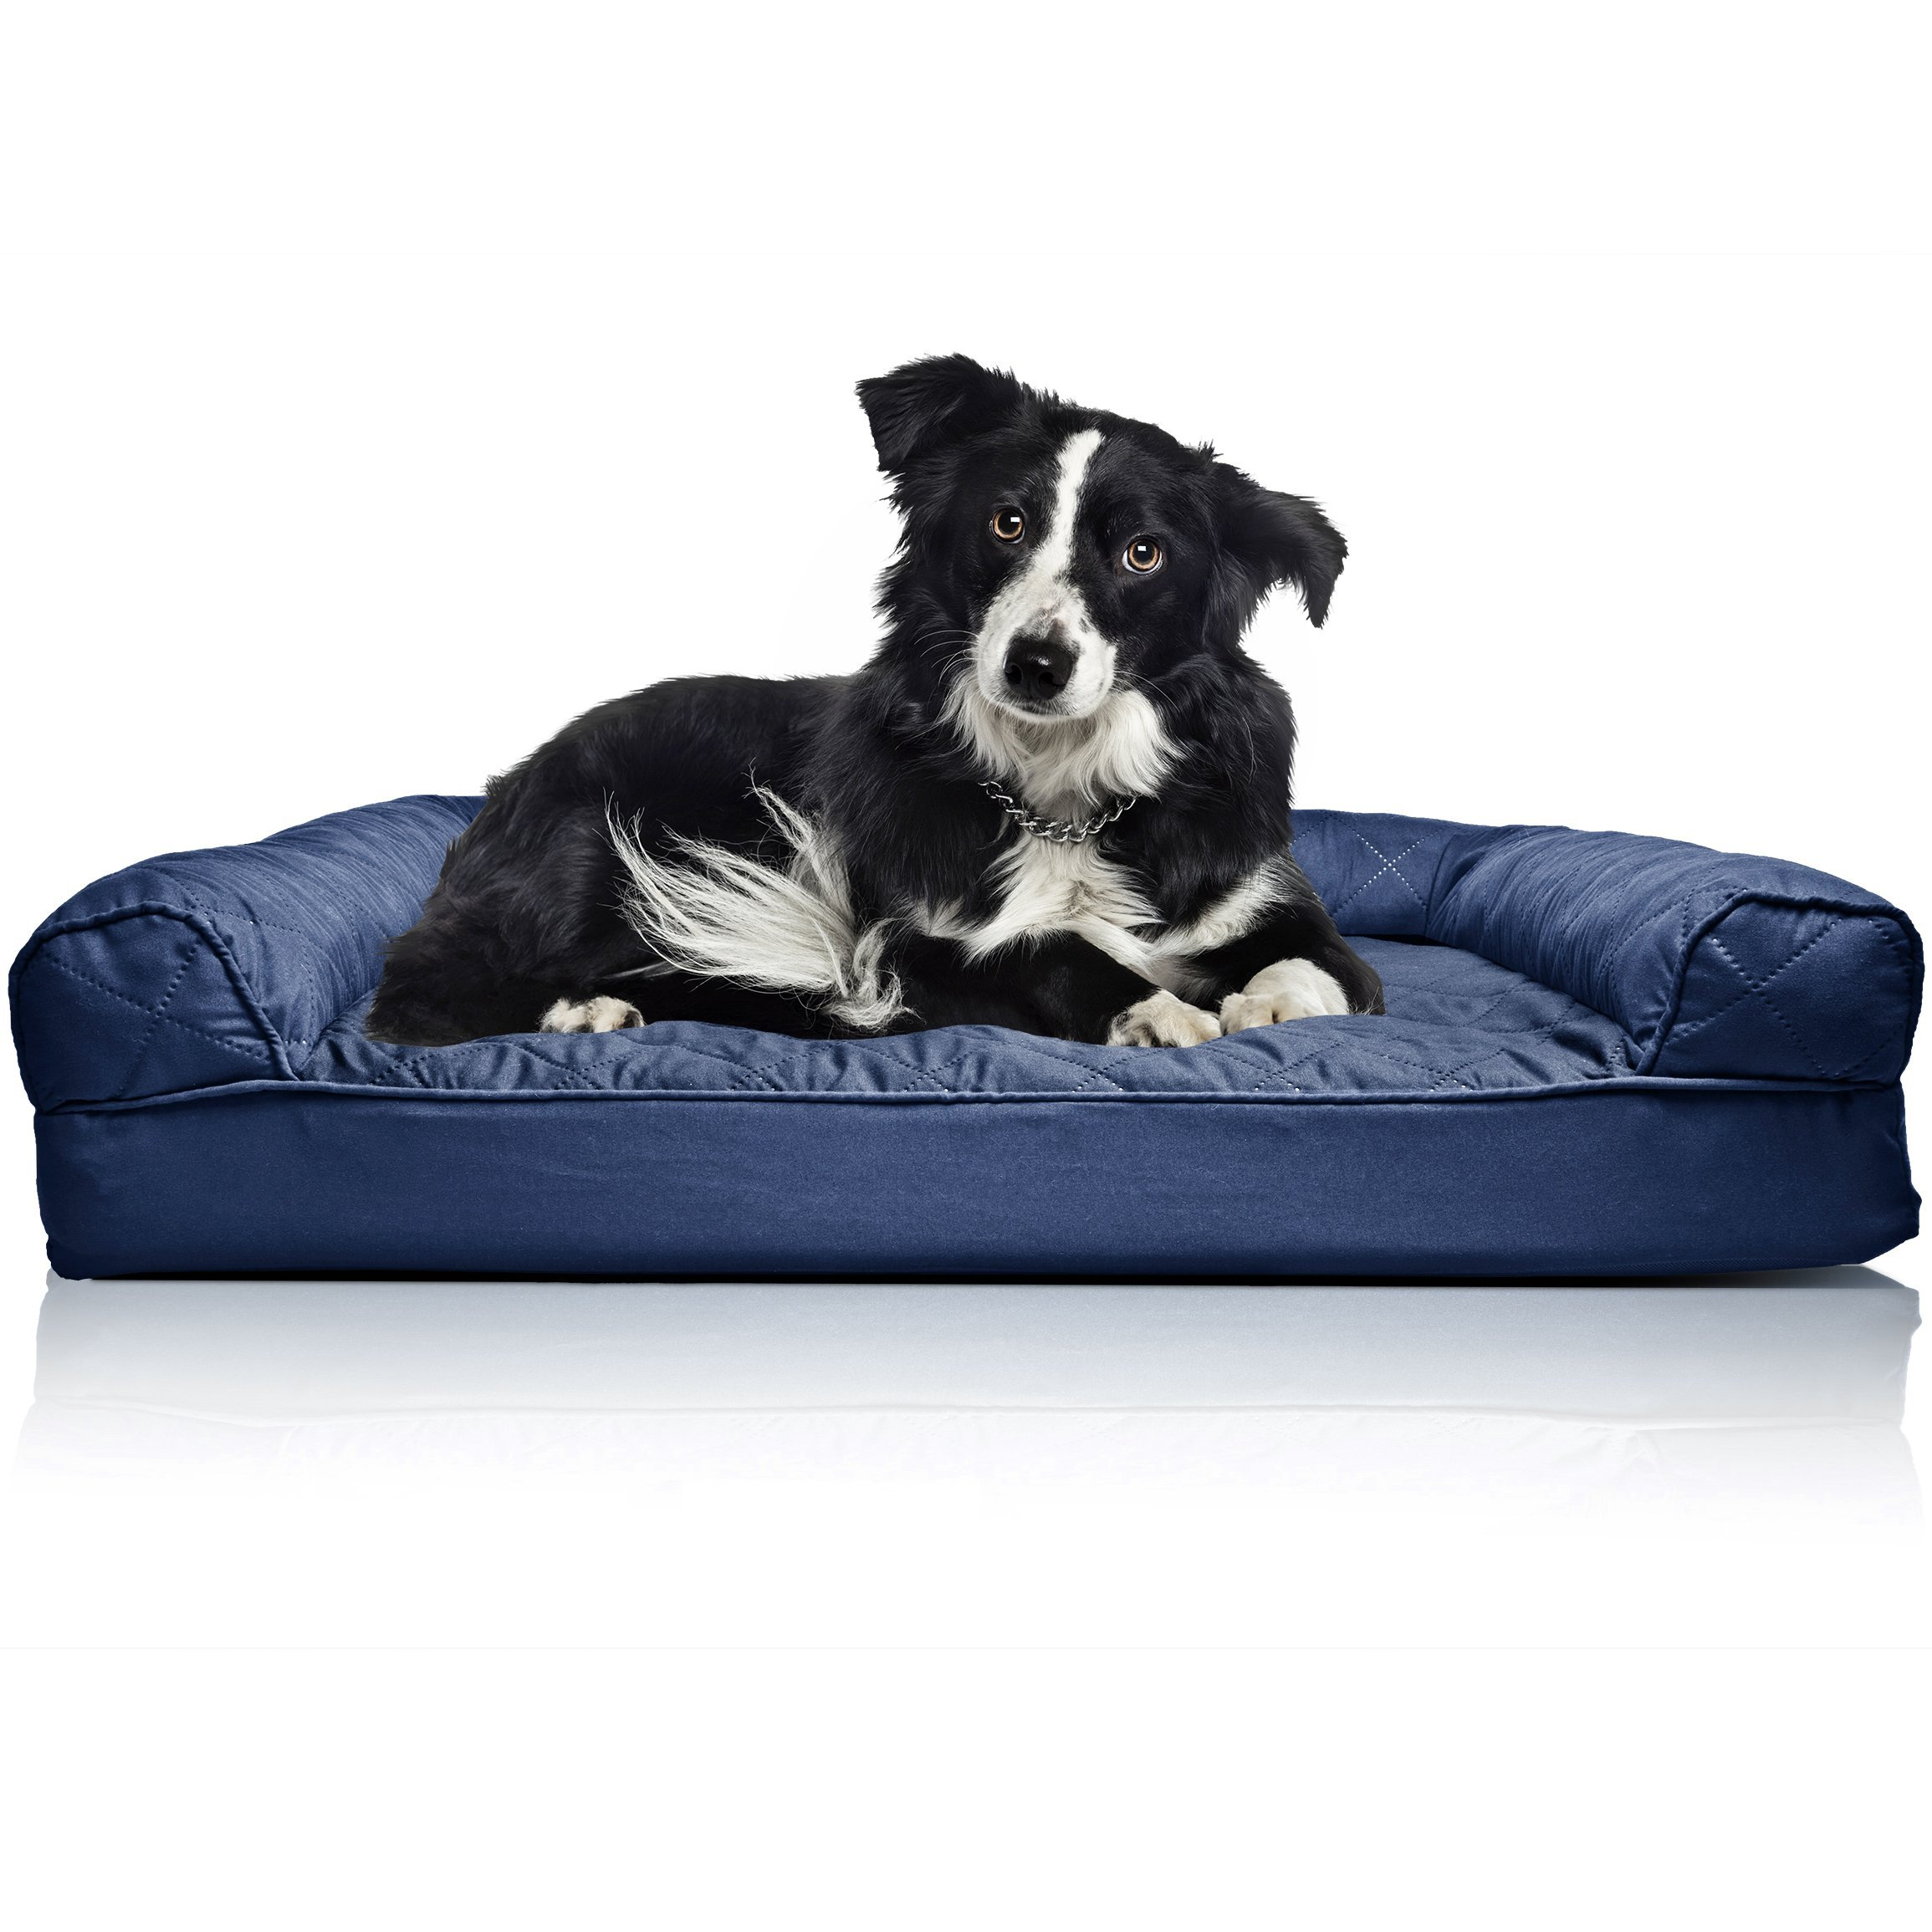 FurHaven Pet Dog Bed | Orthopedic Quilted Sofa-Style Couch Pet Bed for Dogs & Cats, Navy, Large